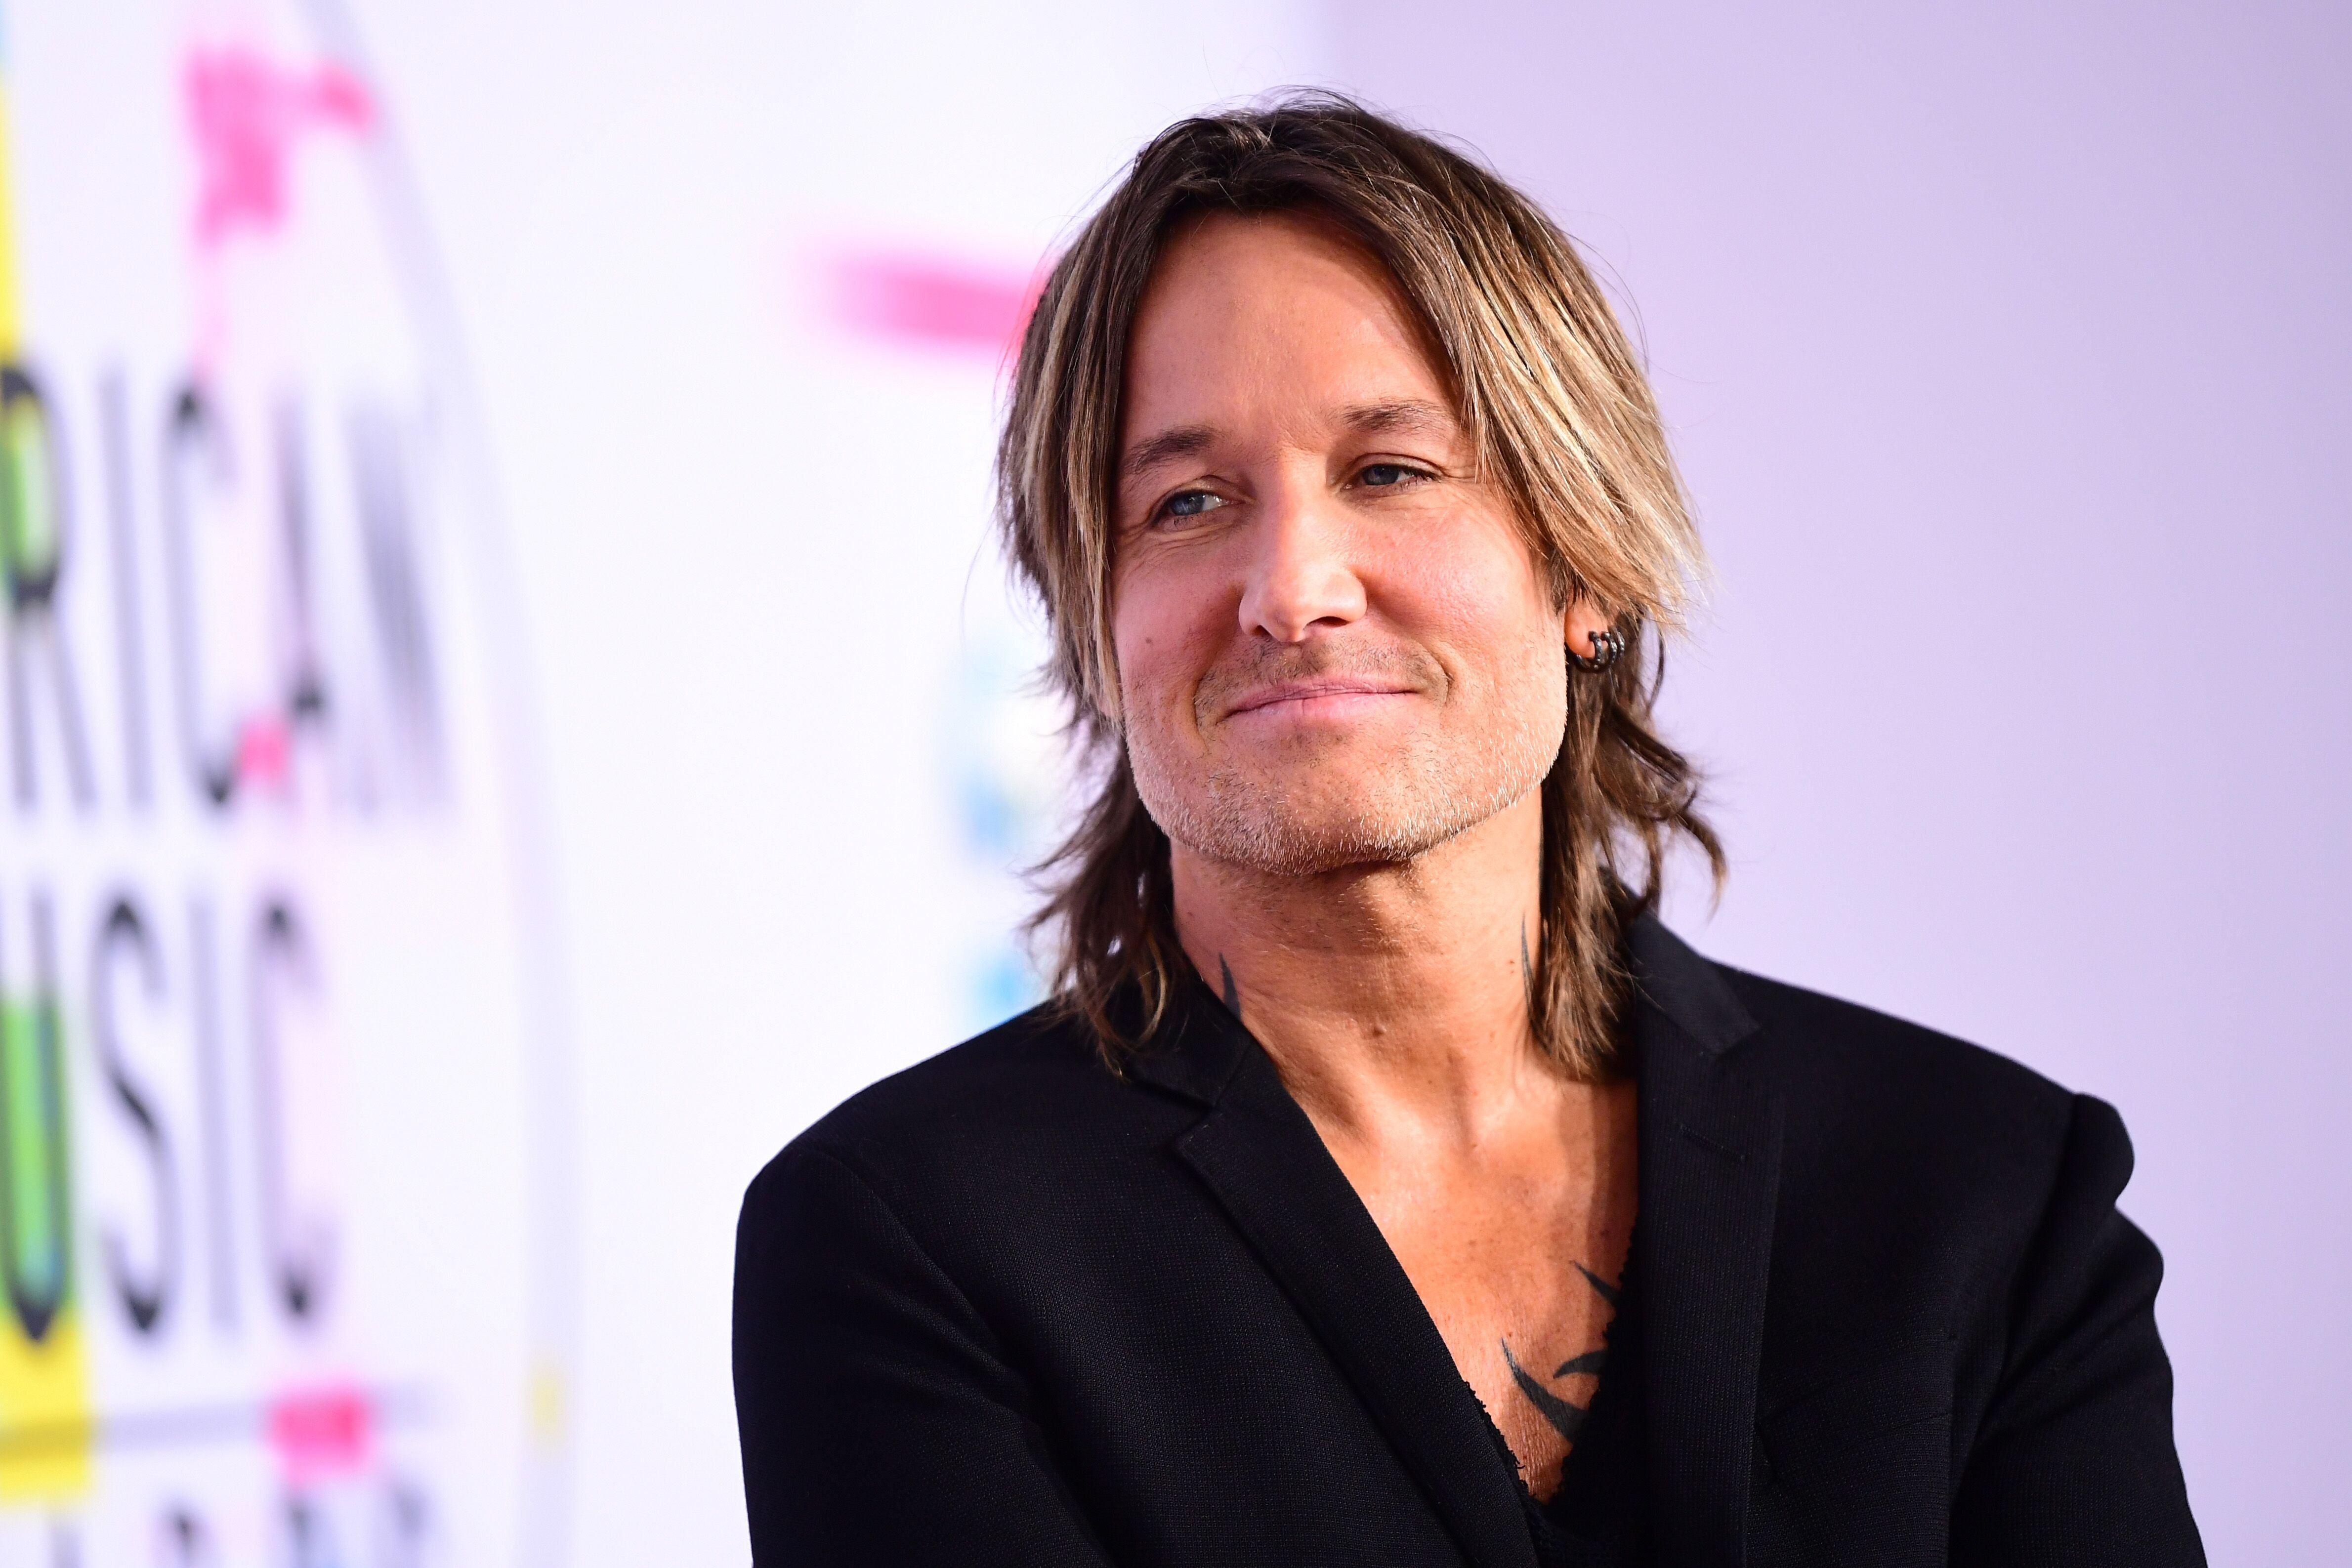 Keith Urban at the American Music Awards at Microsoft Theater on November 19, 2017, in Los Angeles, California | Photo: Emma McIntyre/AMA2017/Getty Images